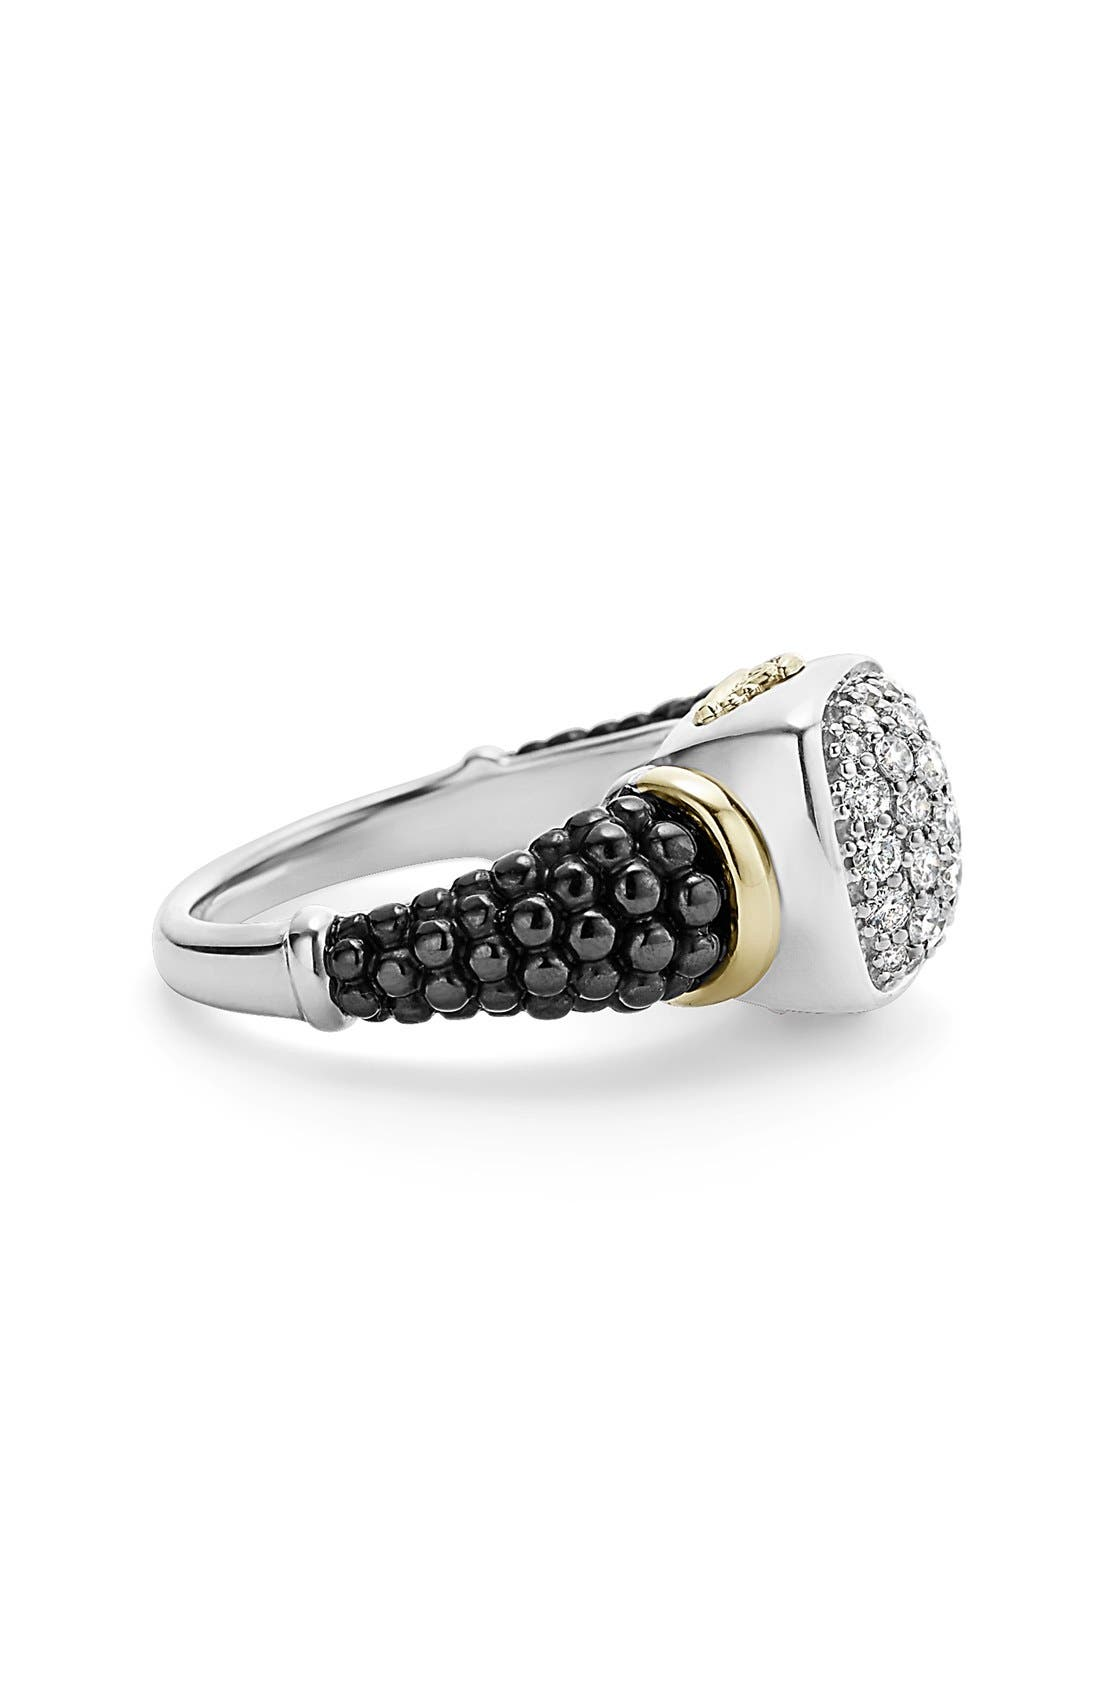 'Caviar' Diamond Ring,                             Alternate thumbnail 5, color,                             BLACK/ GOLD